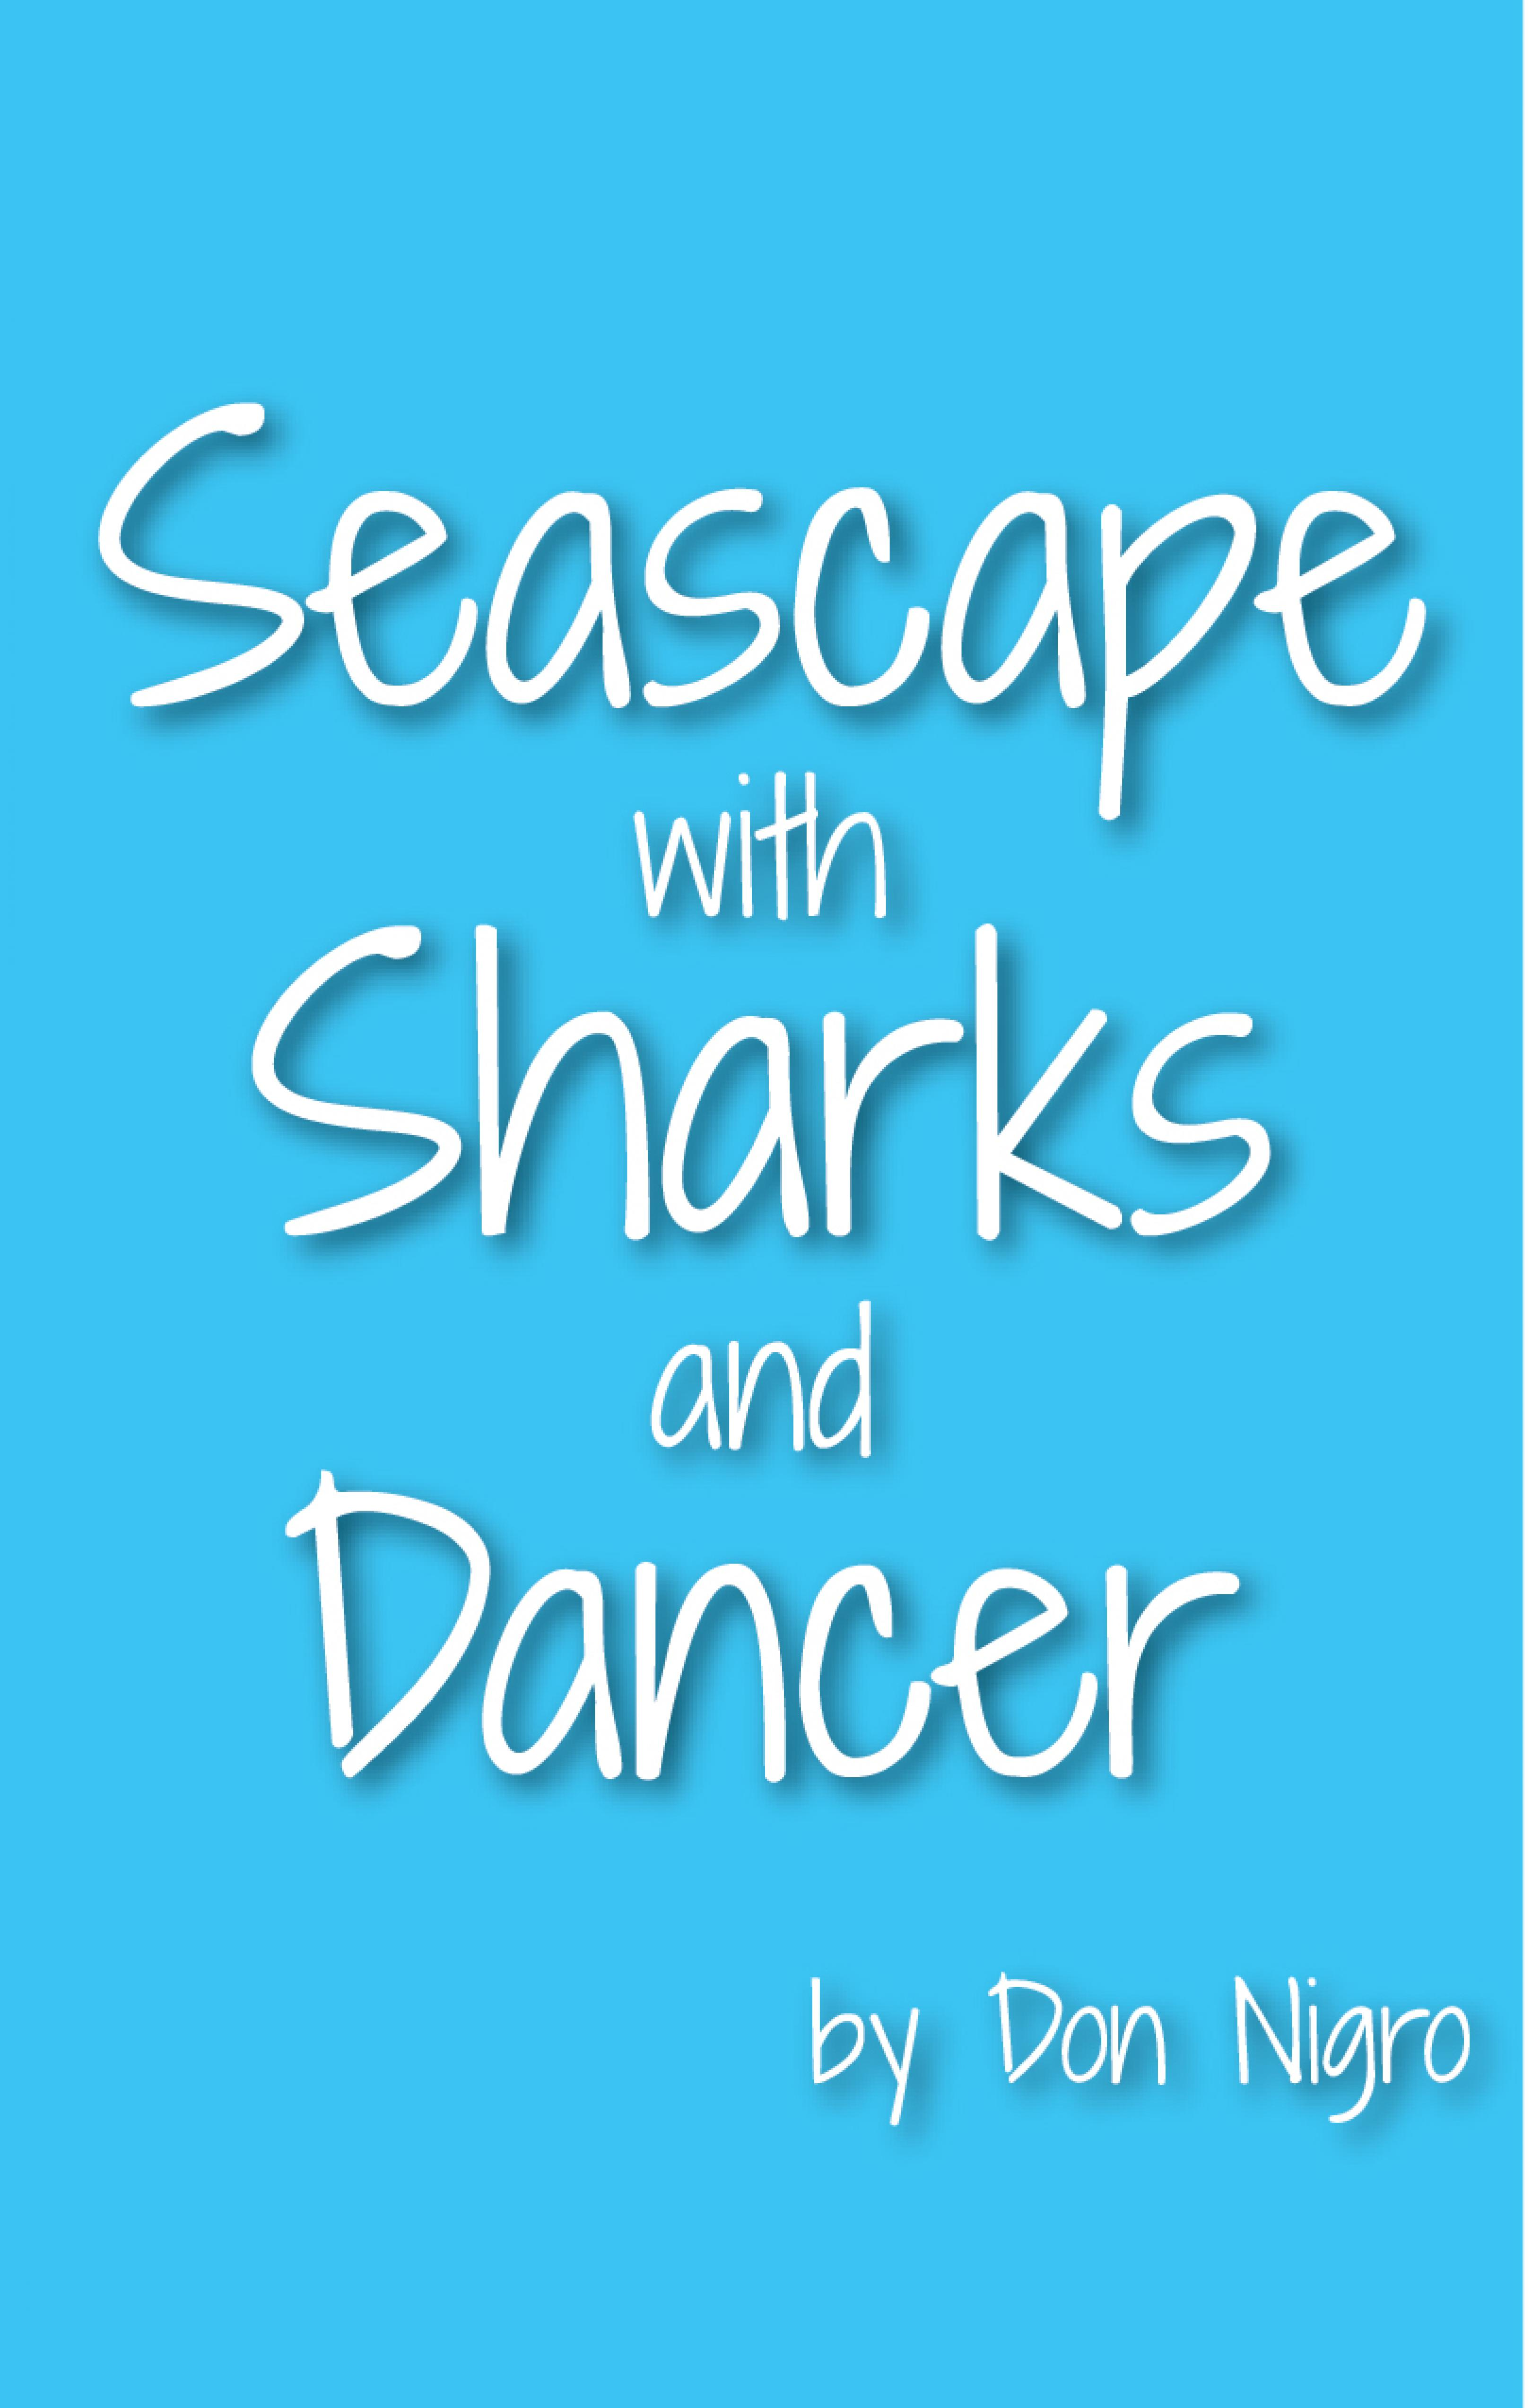 Seascape with Sharks and Dancer banner image